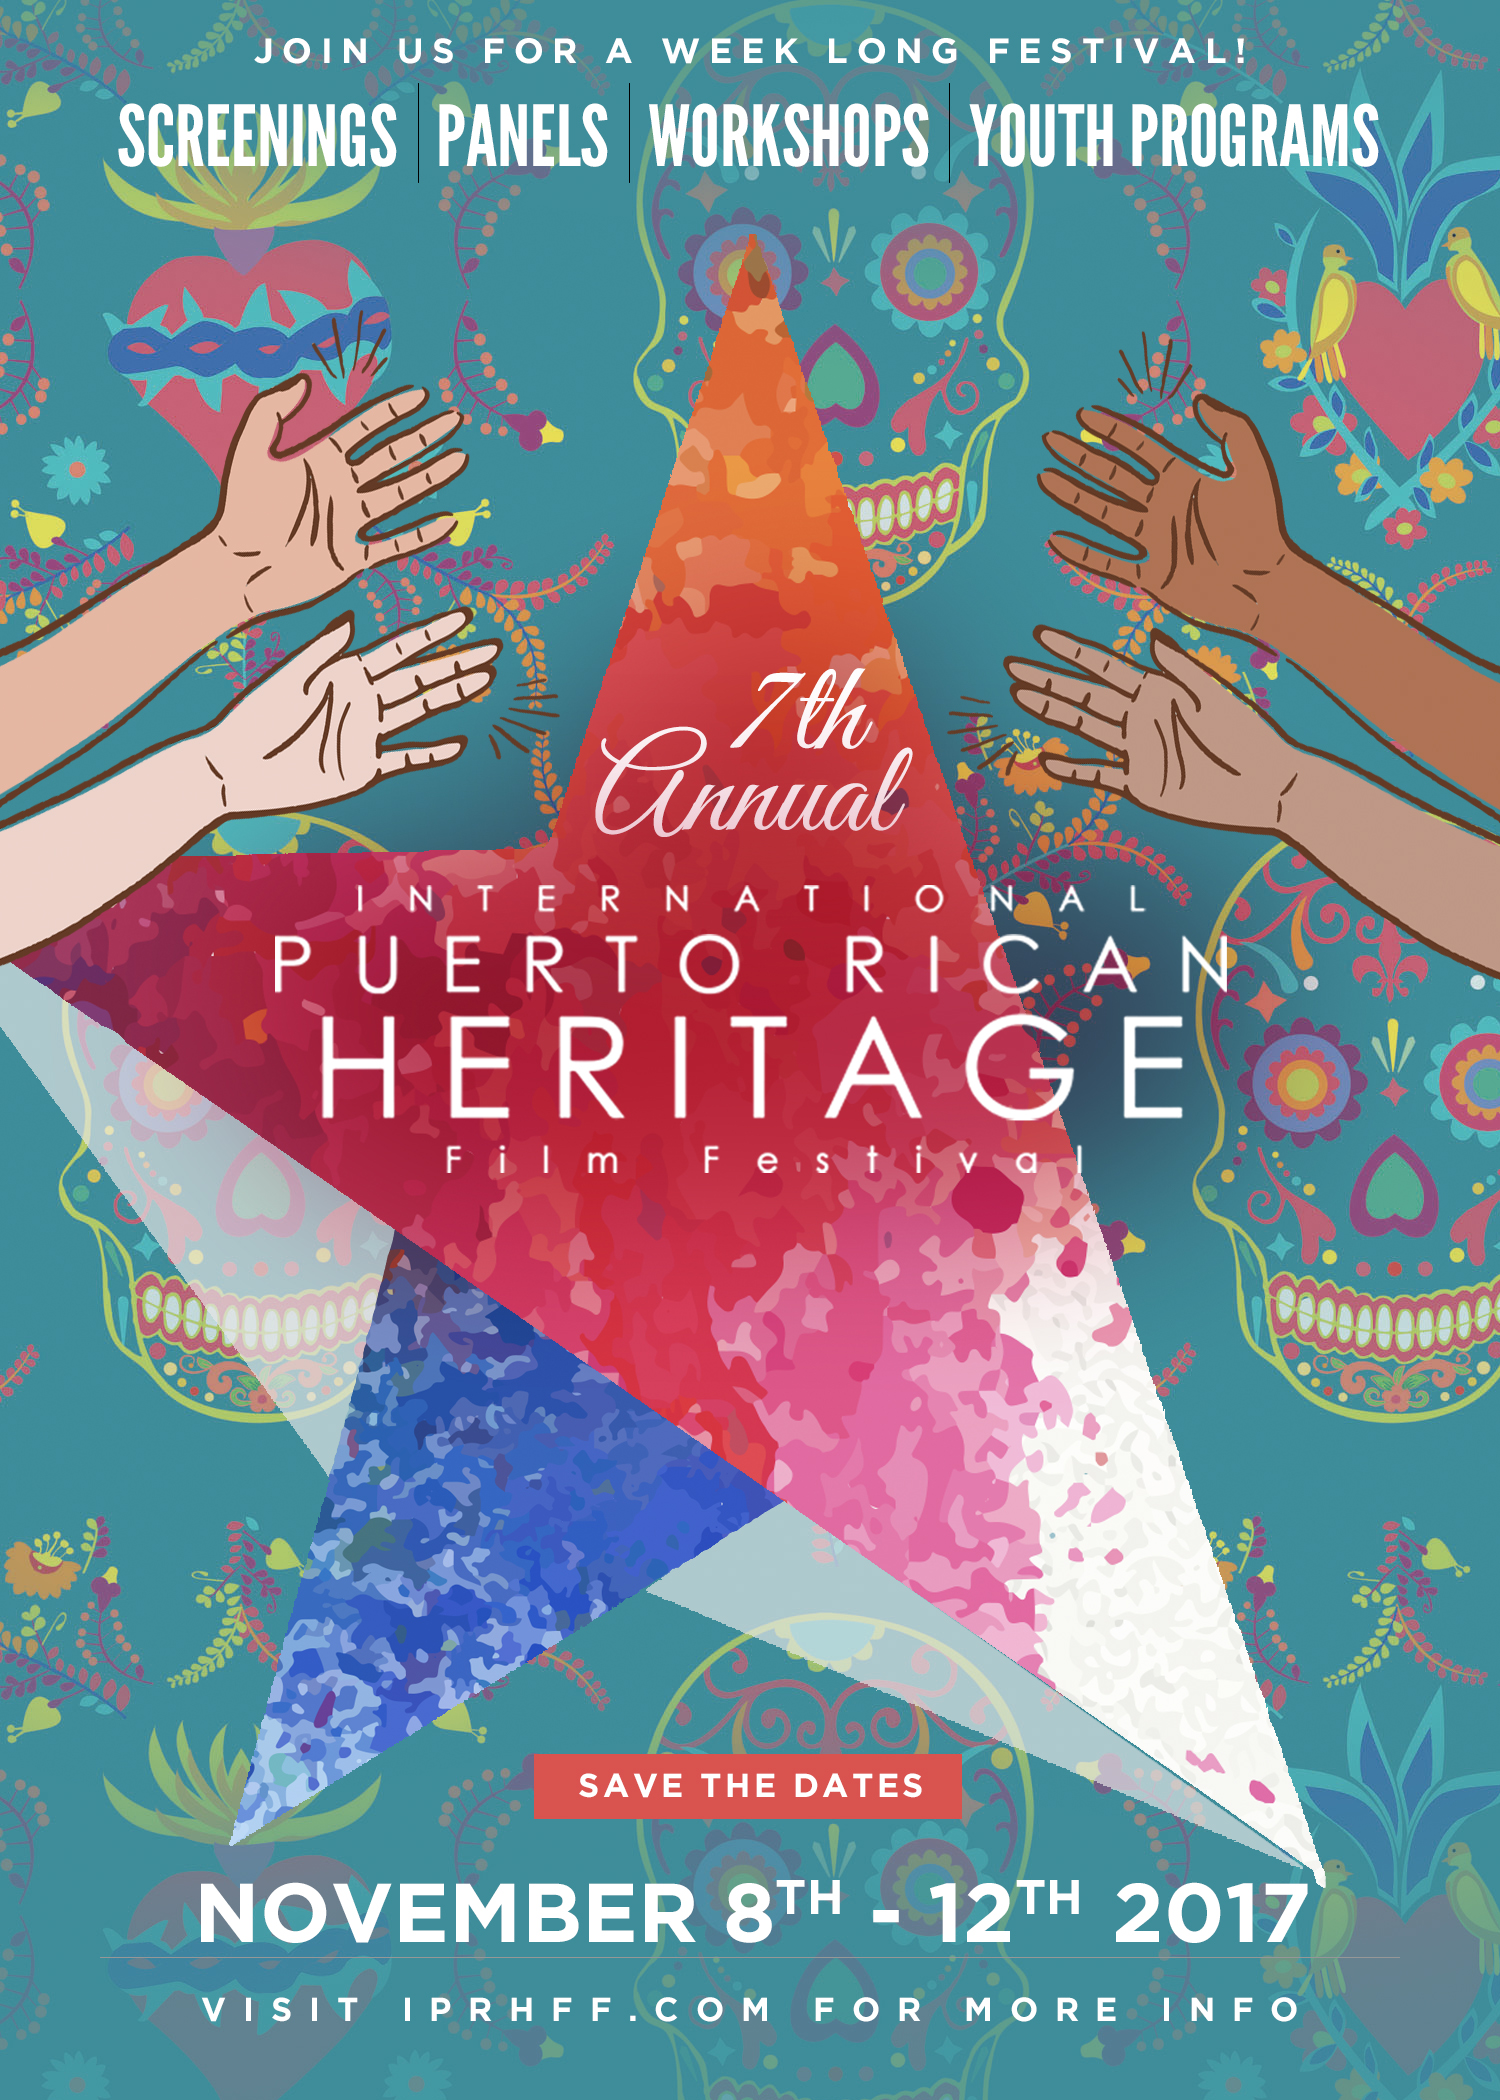 7th Annual International Puerto Rican Heritage Film Festival - Access Passes